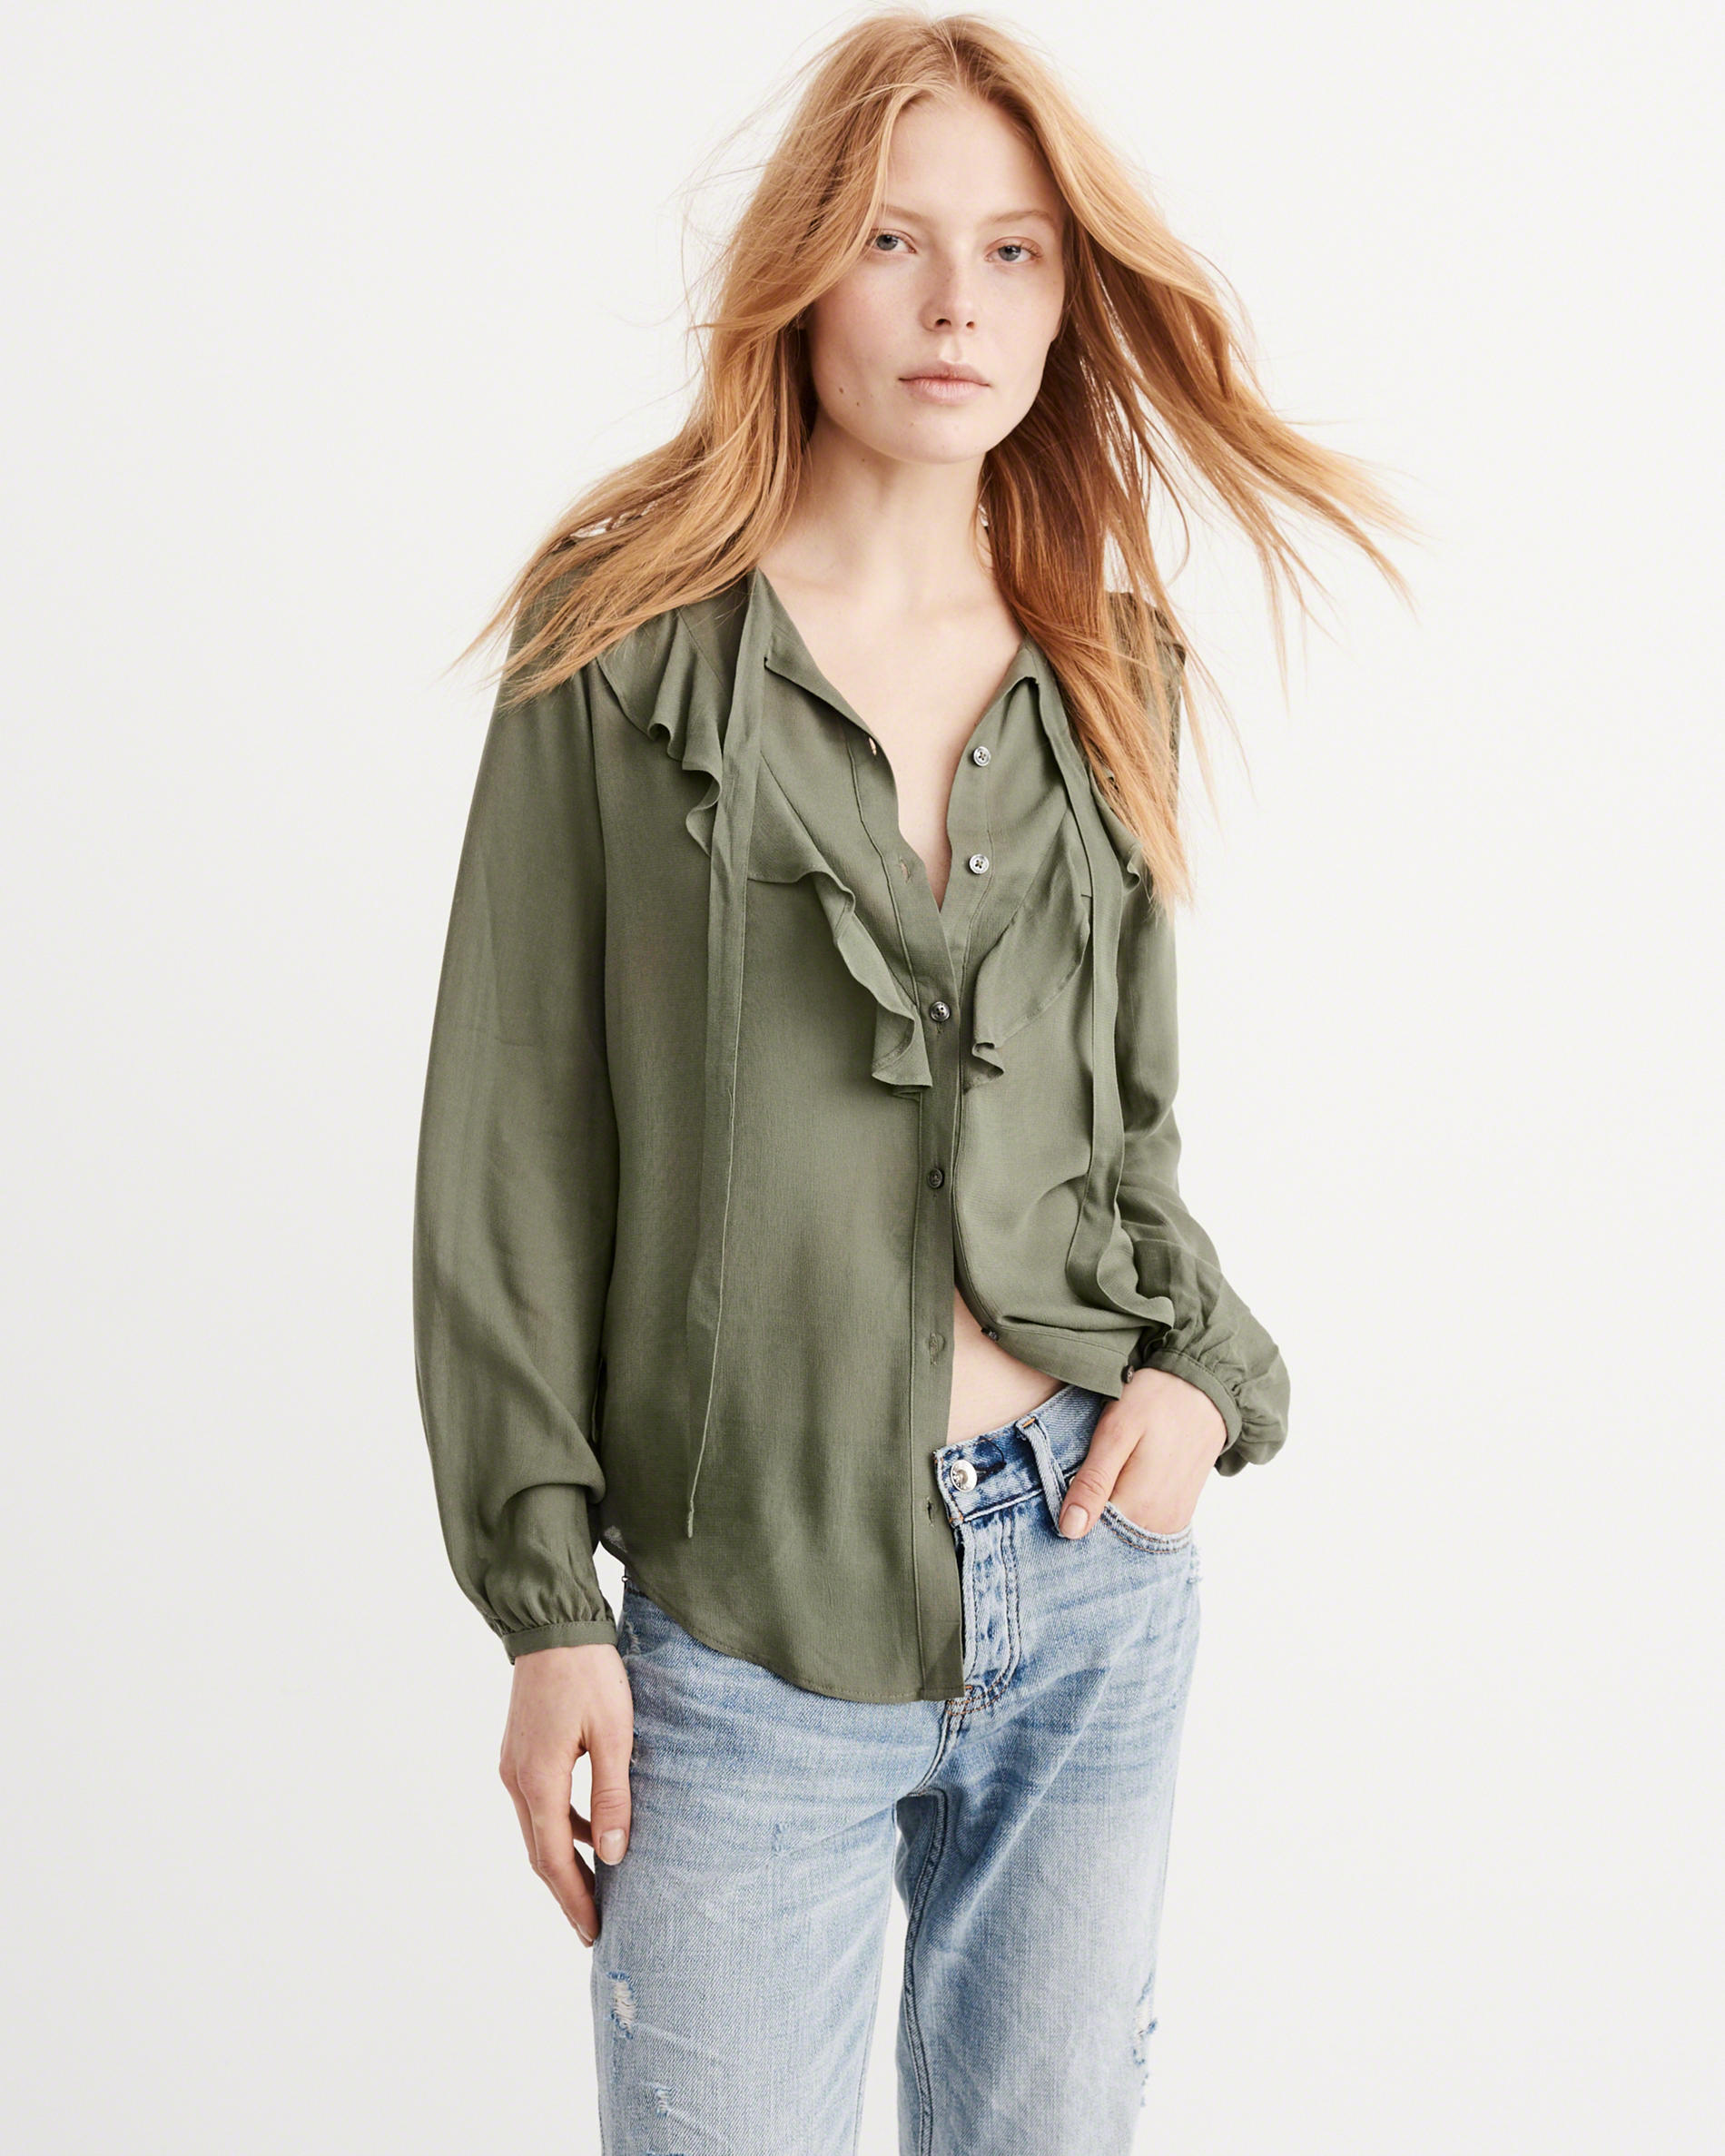 ambercrombie-fitch-extra-sales-20 (2)